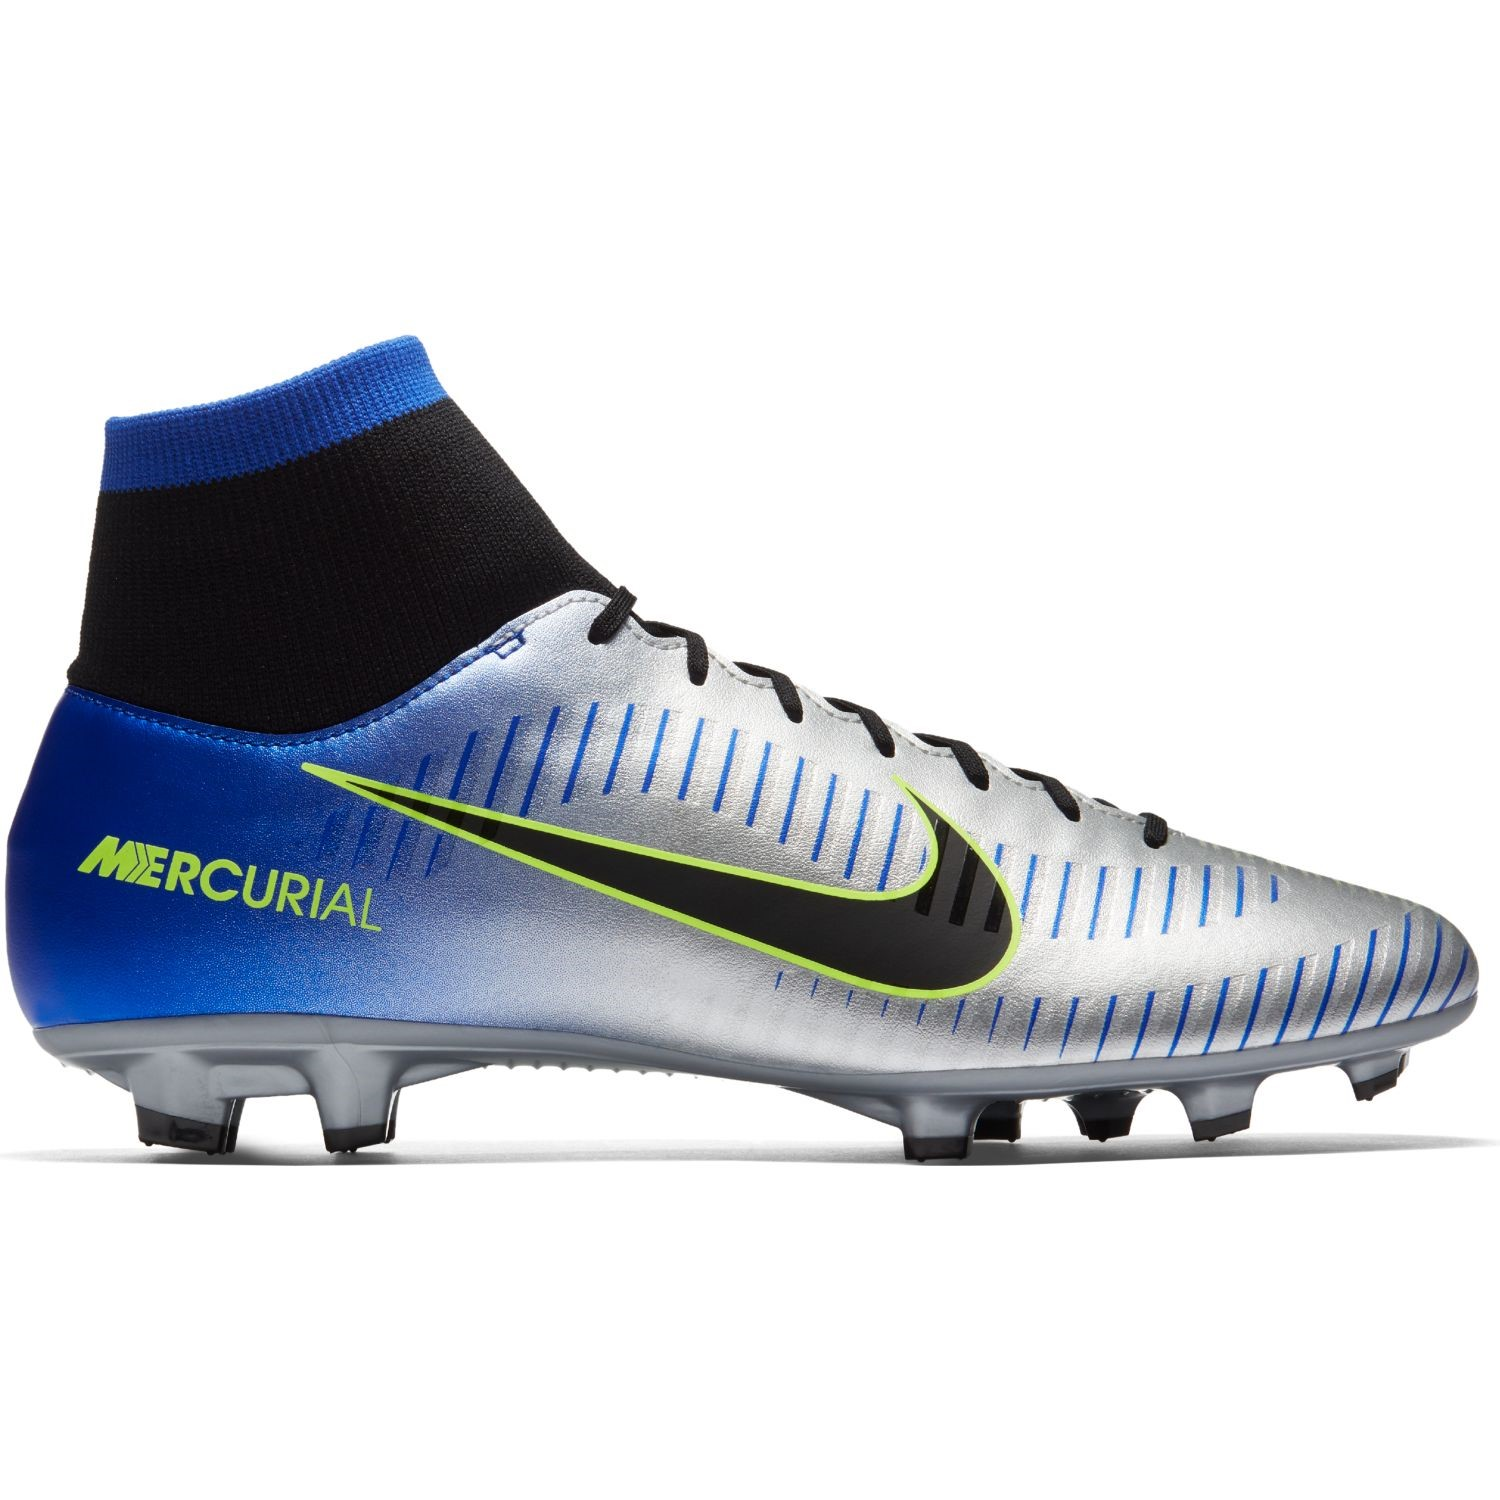 11dda259920 Nike Mercurial Victory VI Dynamic Fit Neymar FG - Mens Football Boots -  Racer Blue